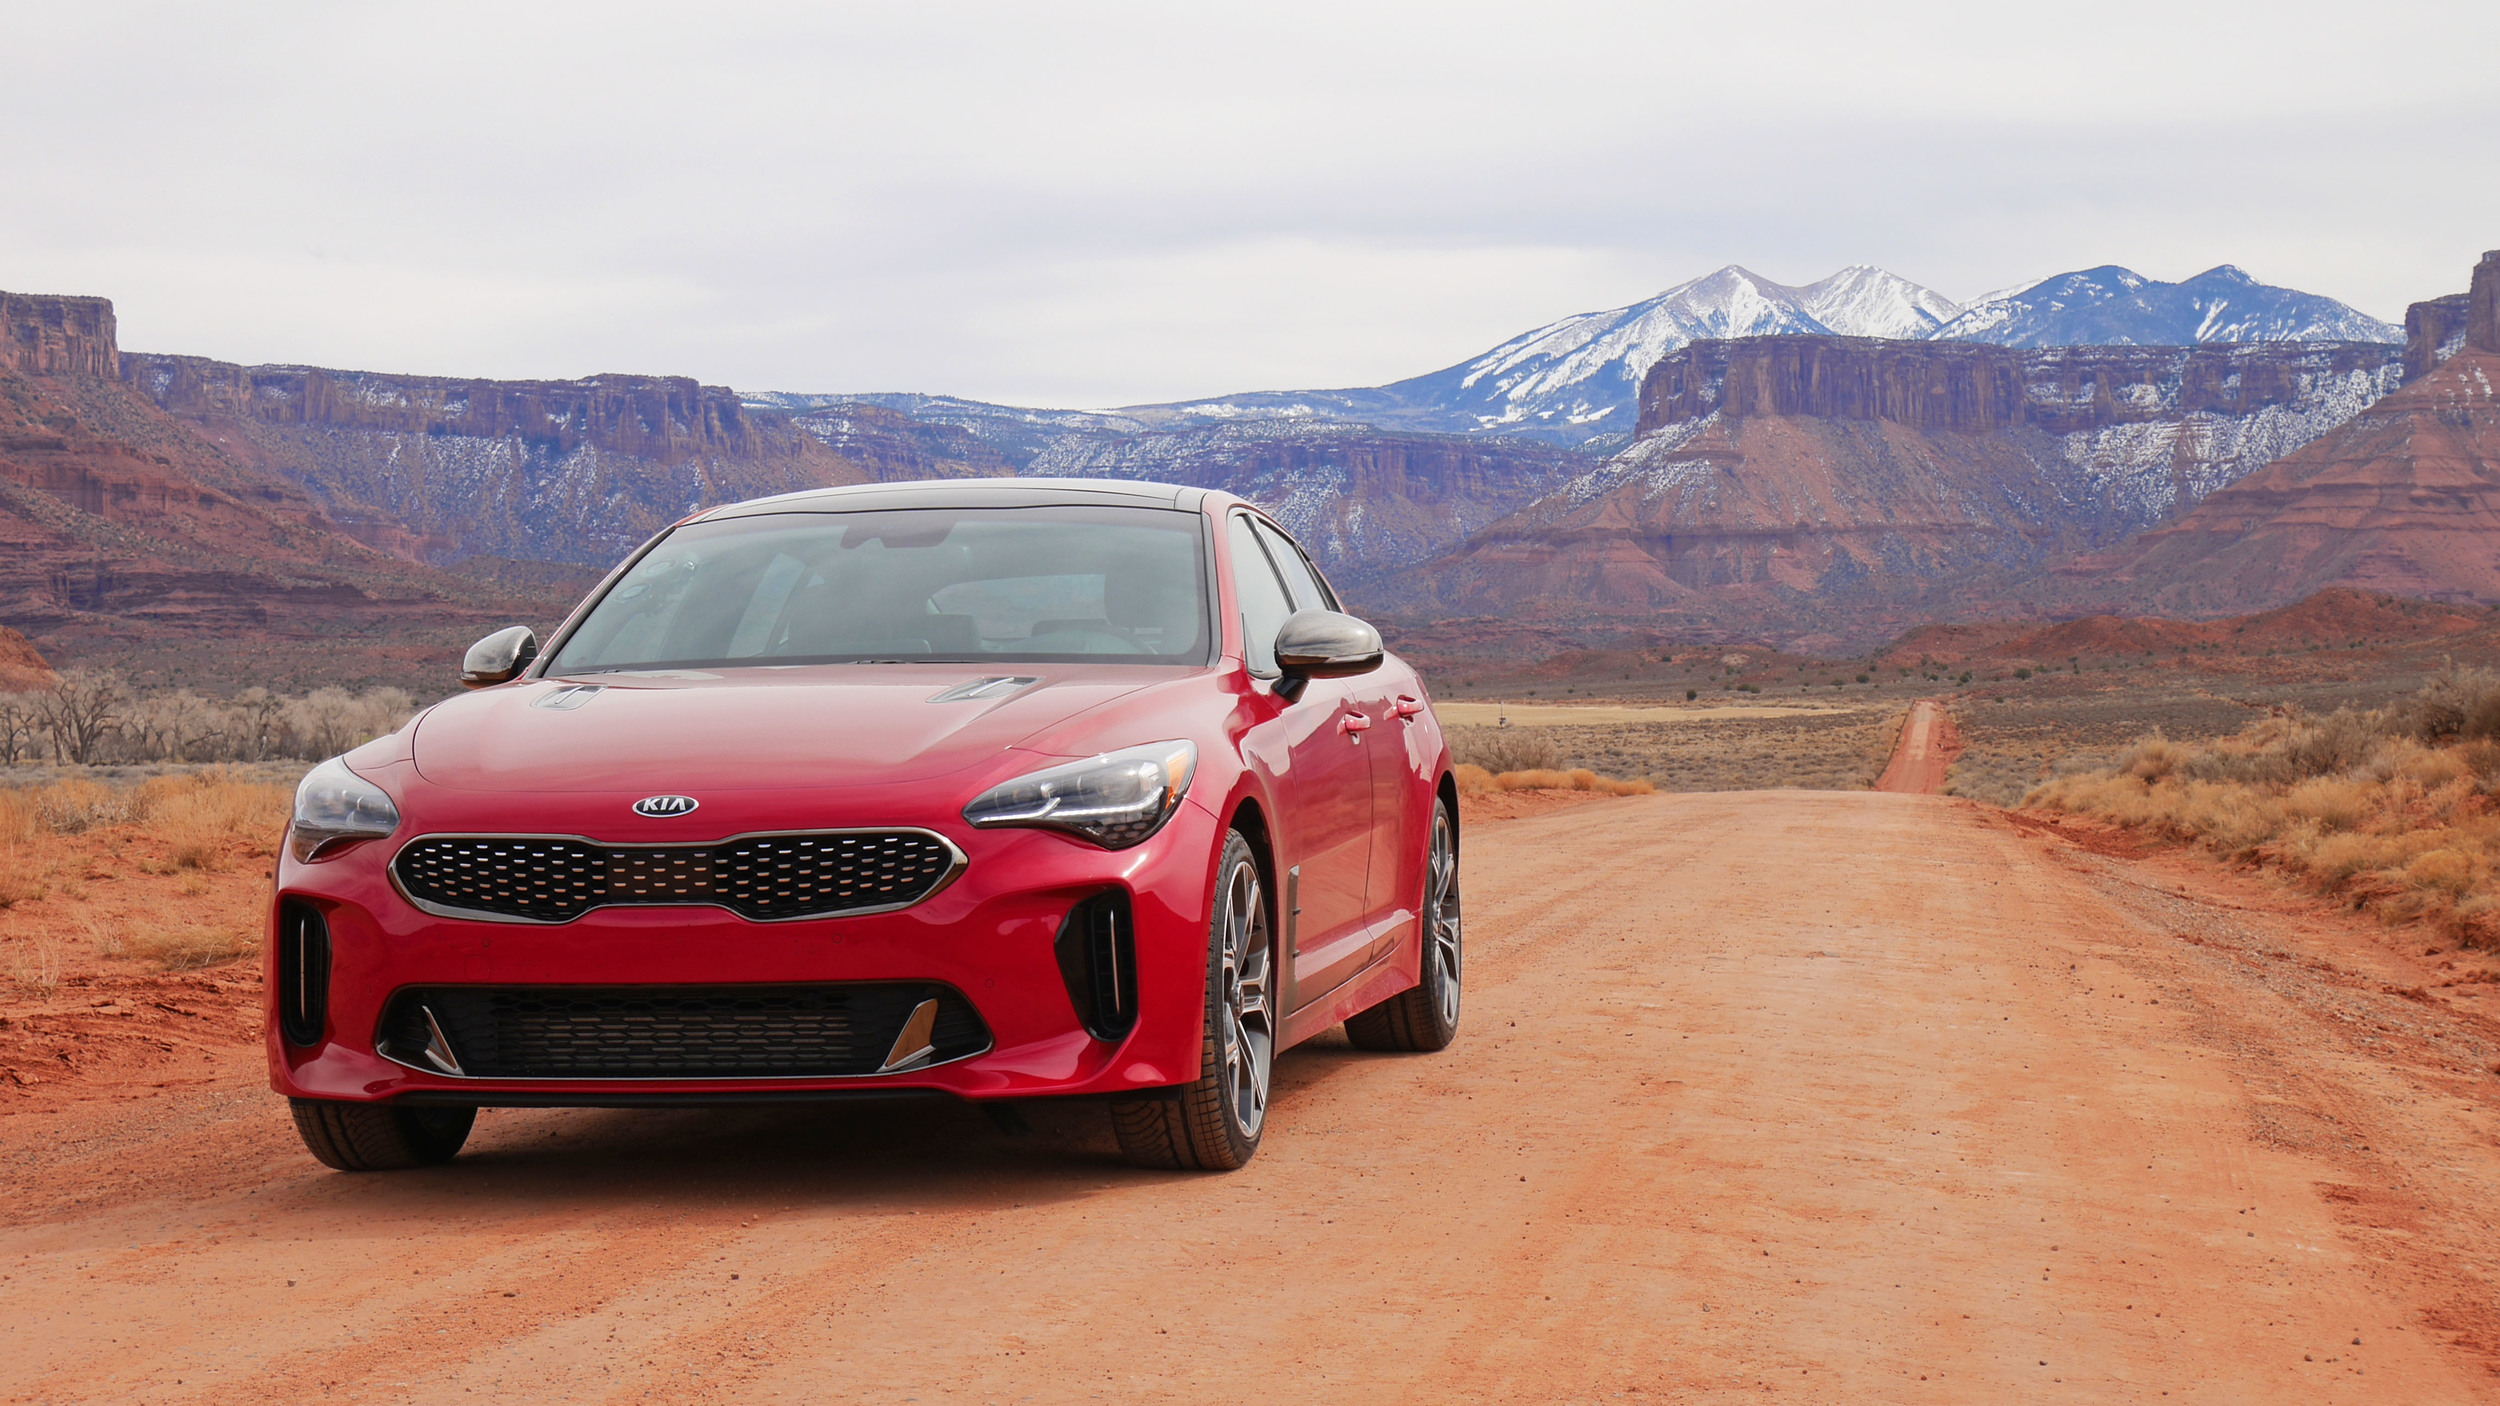 Stinger goes West: Saddle up for 1,400 miles in the 2018 Kia